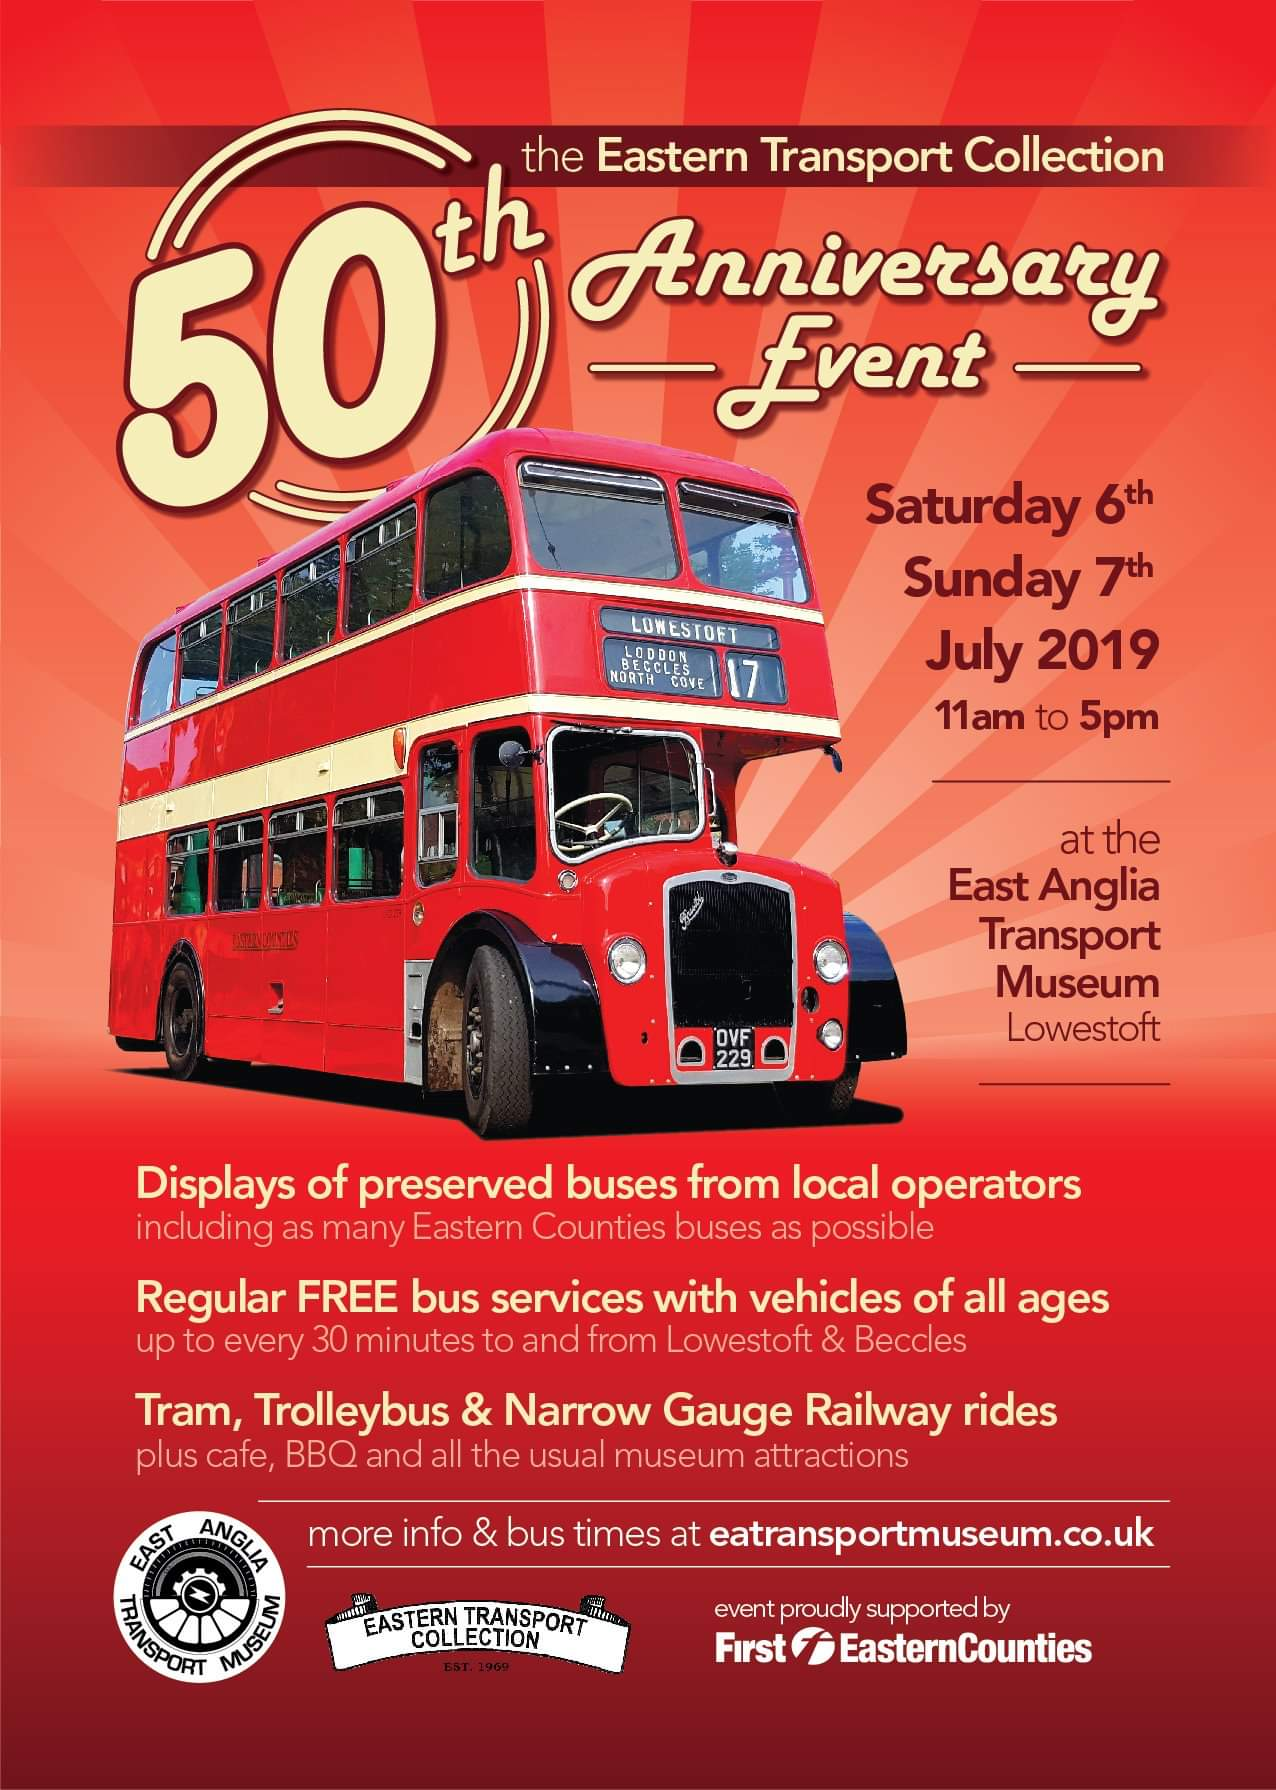 Eastern Transport Collection 50th Anniversary Event